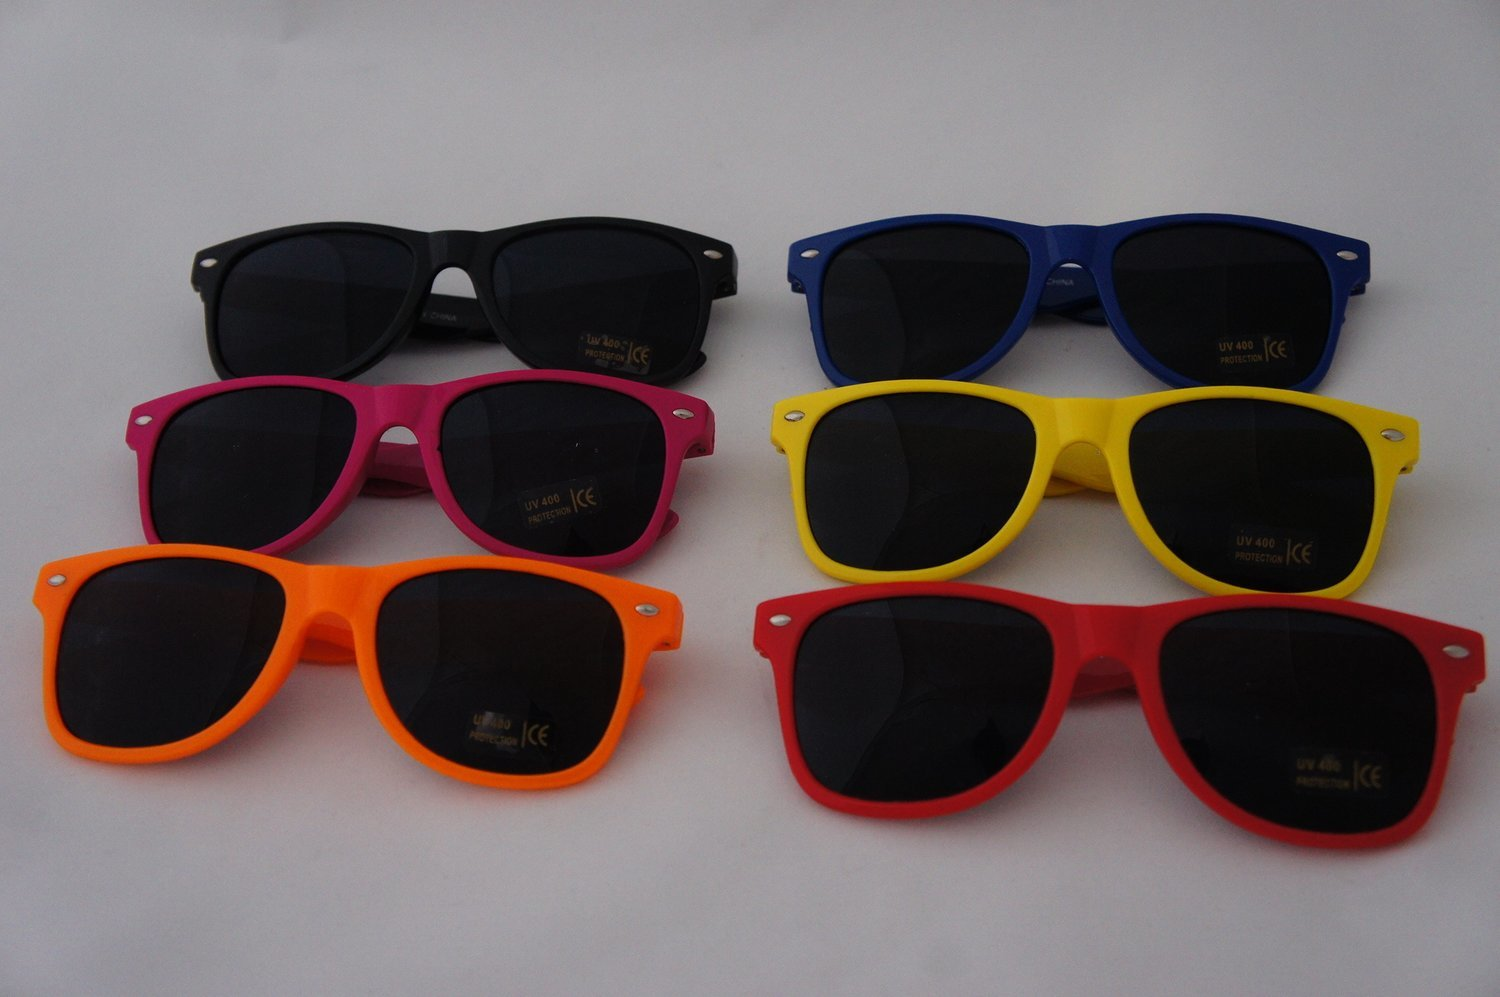 Lentes tipo RB